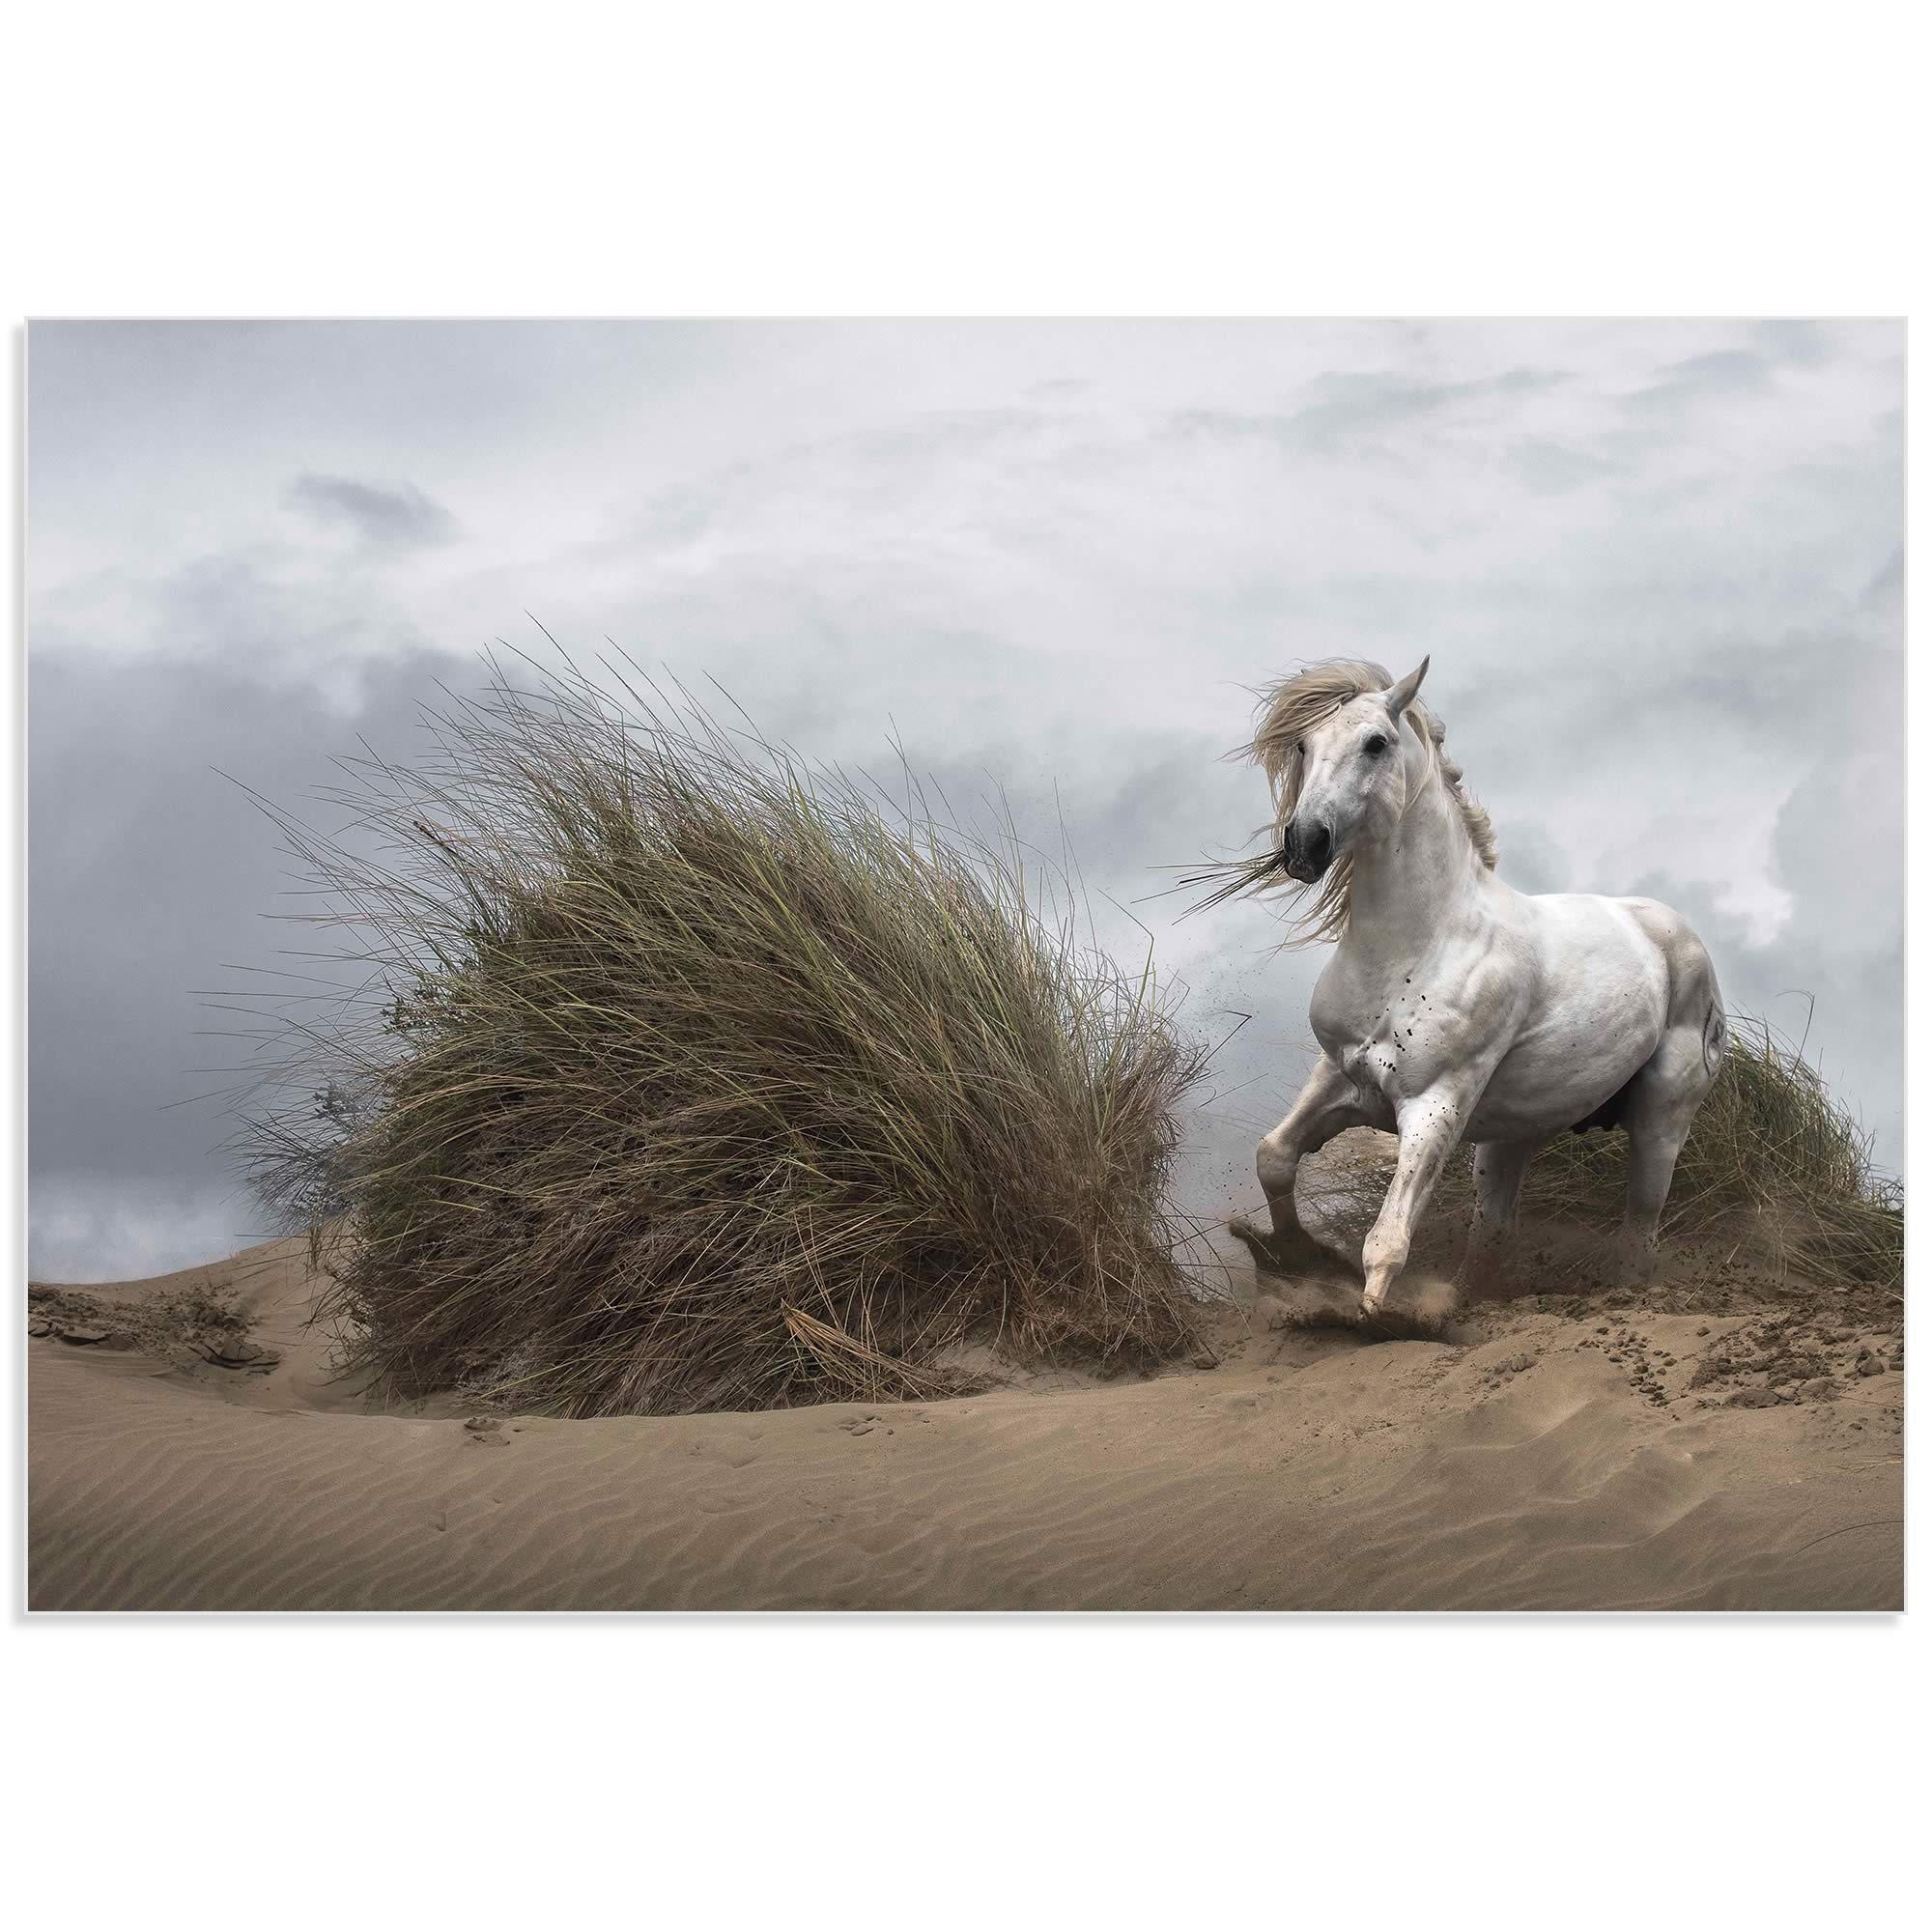 White Stallion by Lucie Bressy - Wild Horse Art on Metal or Acrylic - Alternate View 2